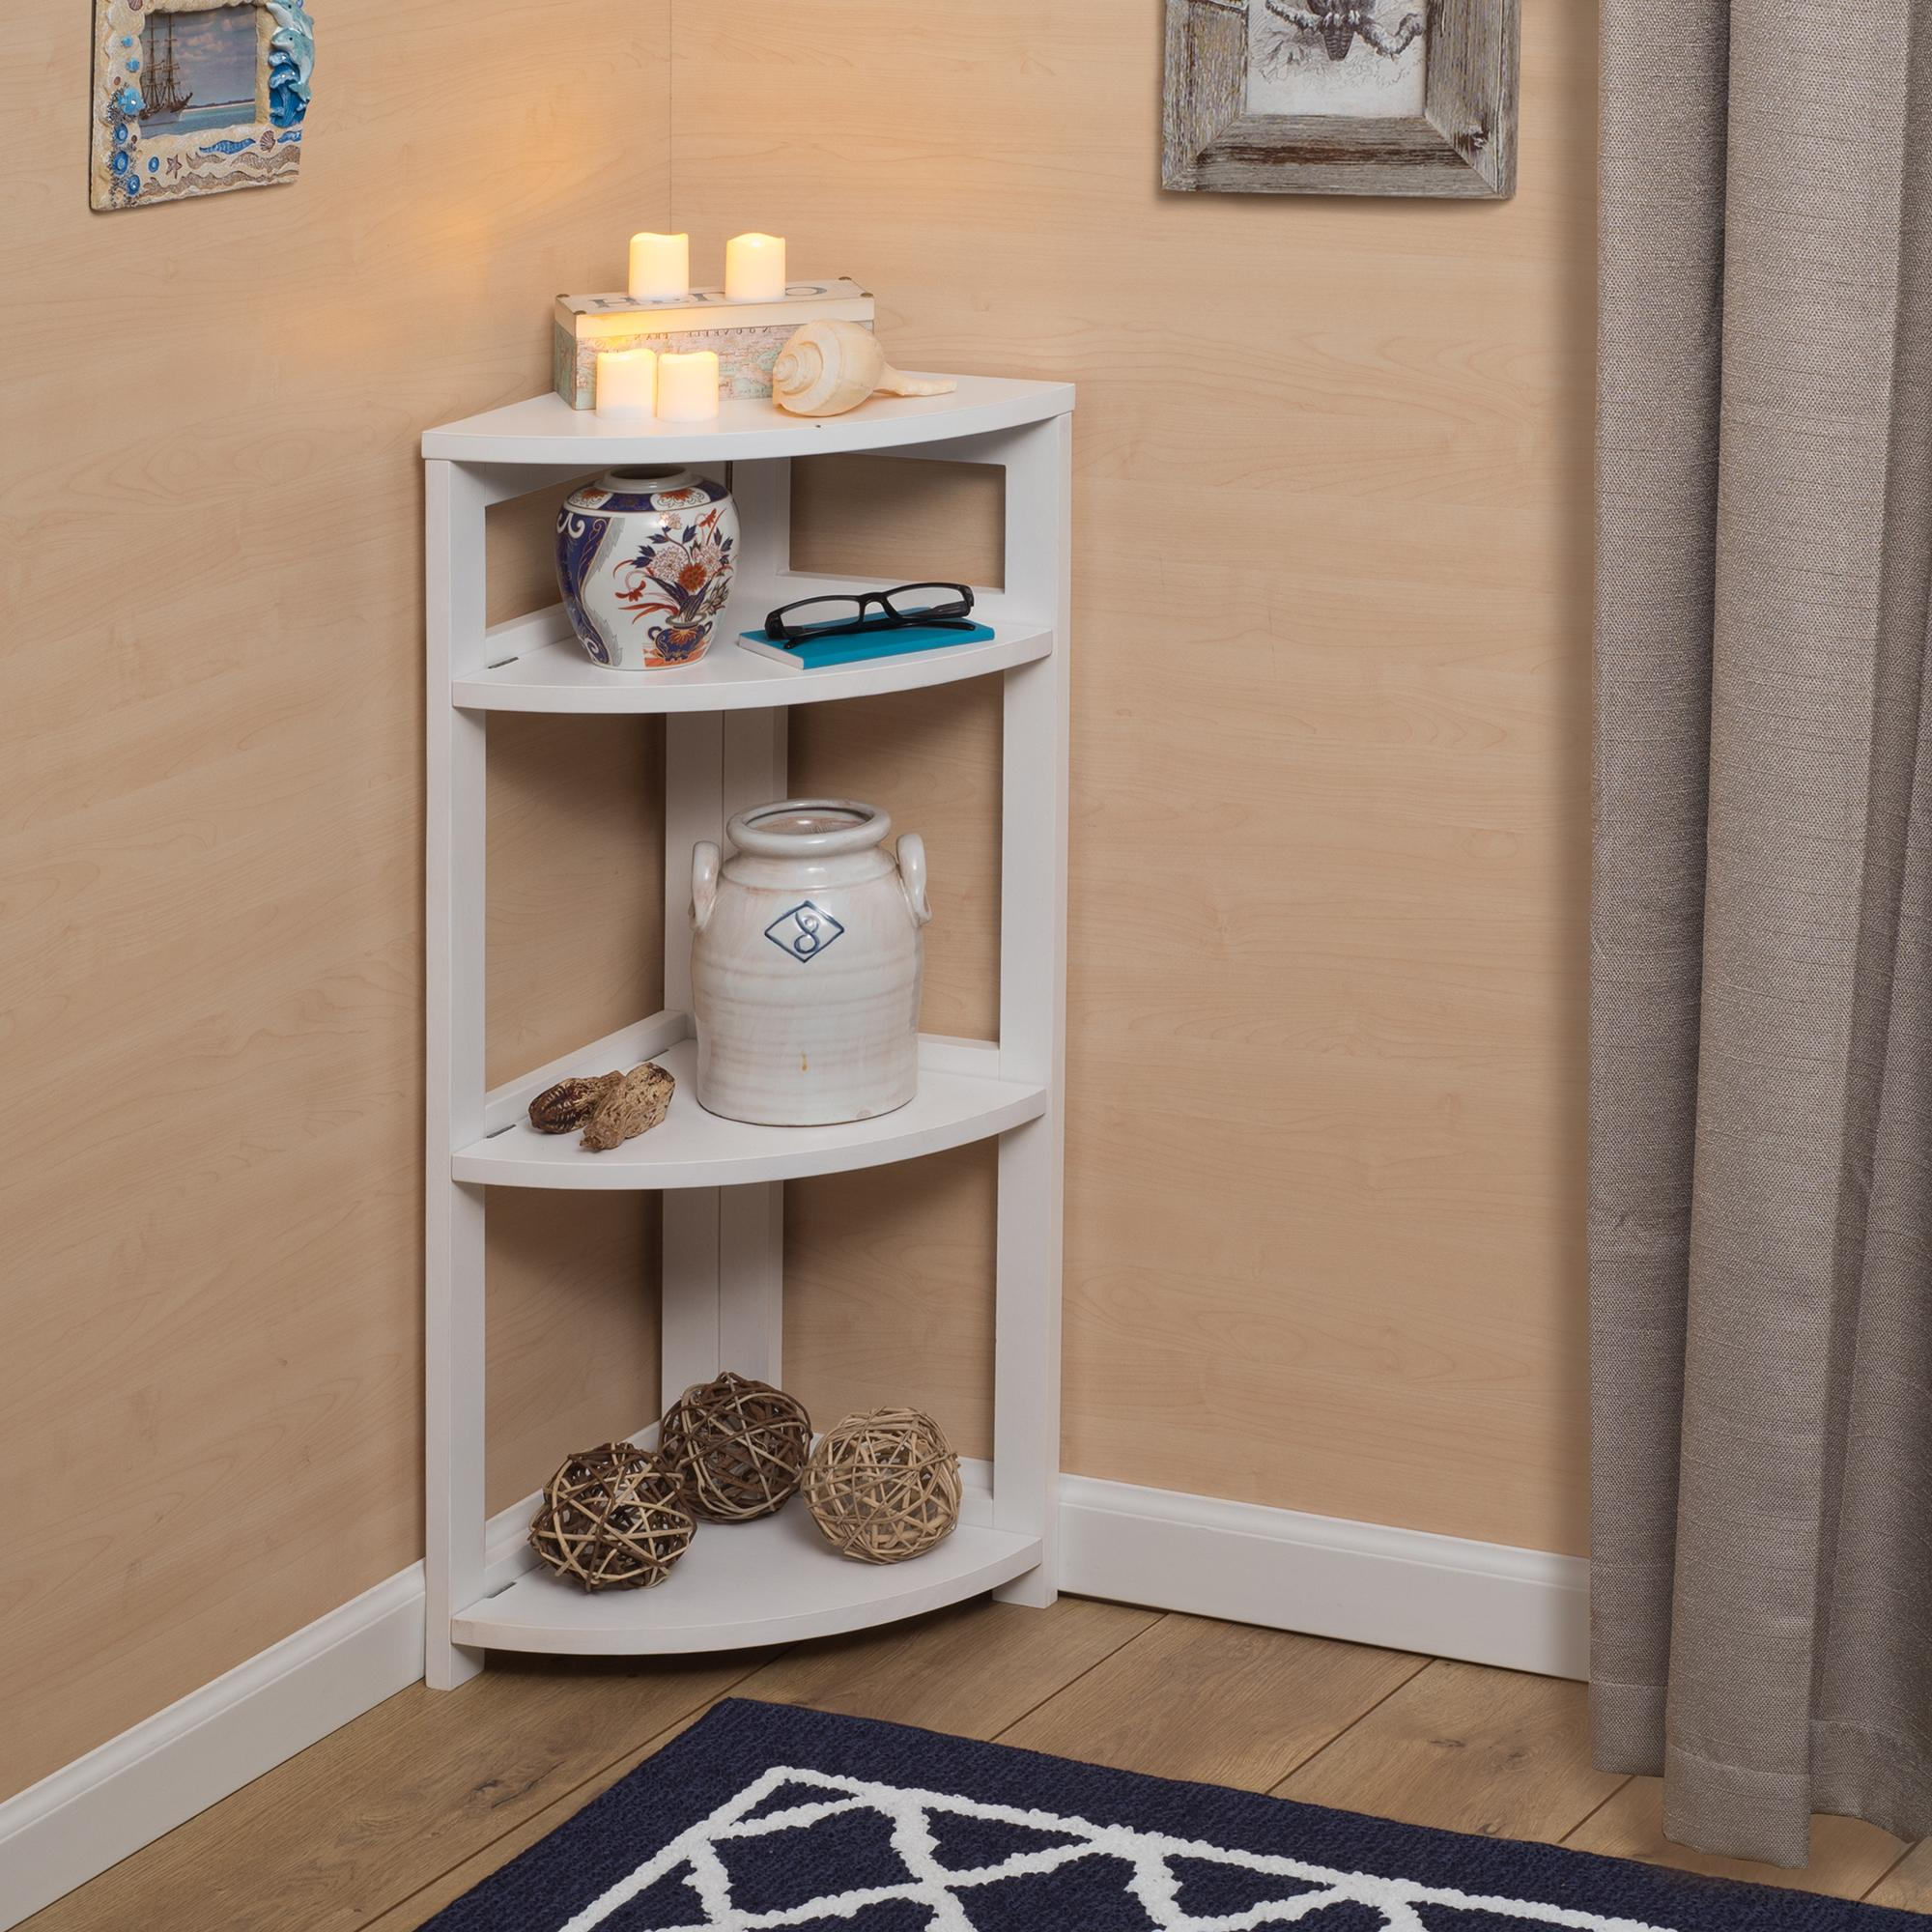 for match budget and specialties monarch every bookcase style all i pin to bookcases decorative wayfair shop